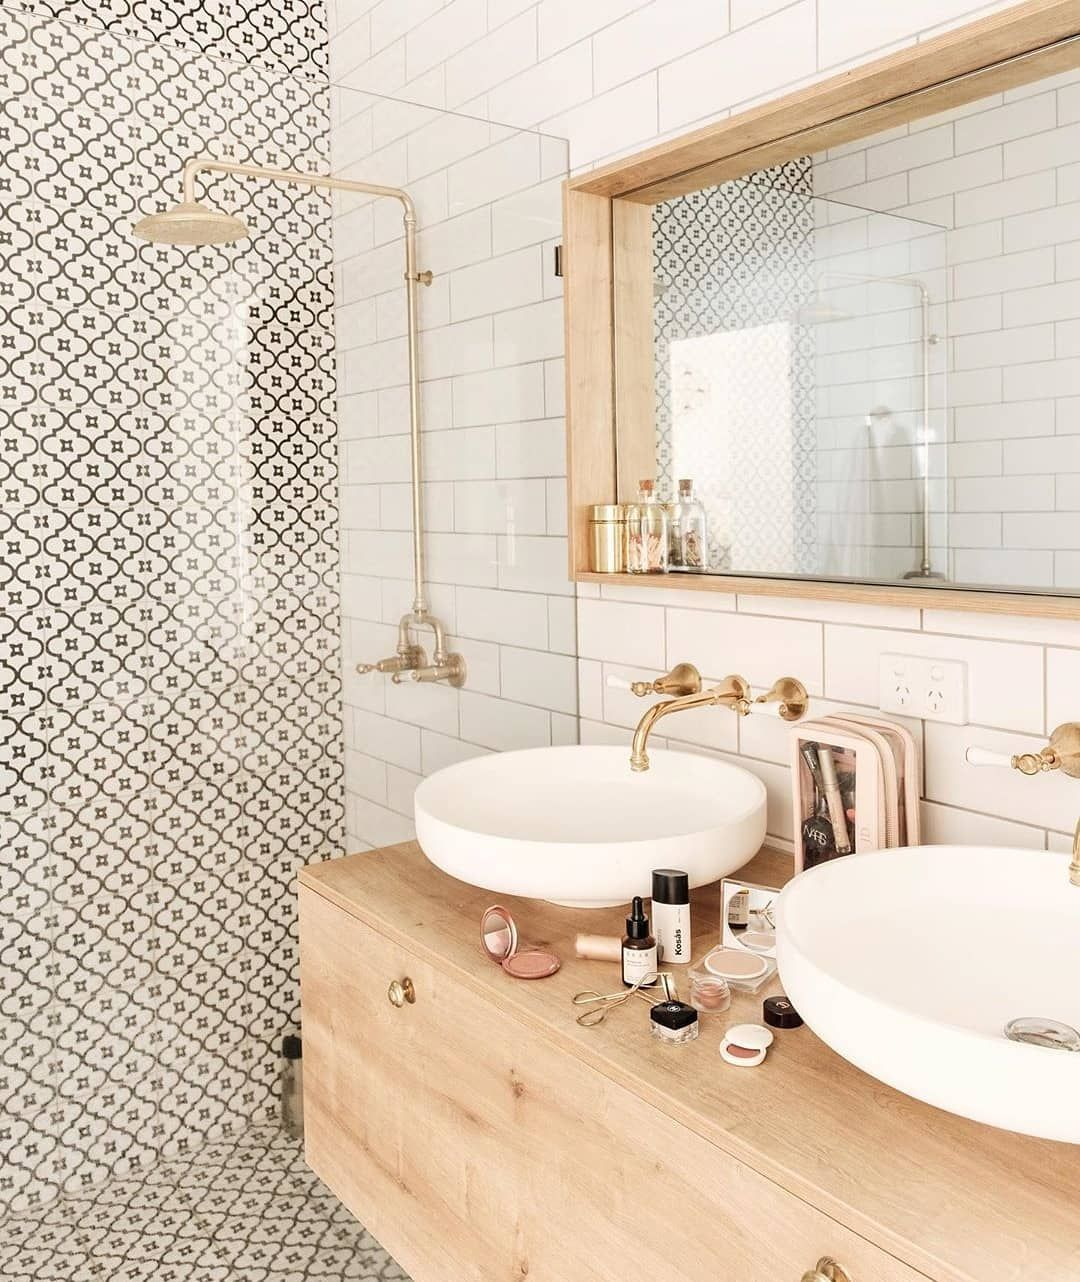 Autumn Design Styling On Instagram I Ve Got A Lineup Of Super Exciting Projects On My Docket S Bathroom Style Bathroom Interior Design Bathroom Interior